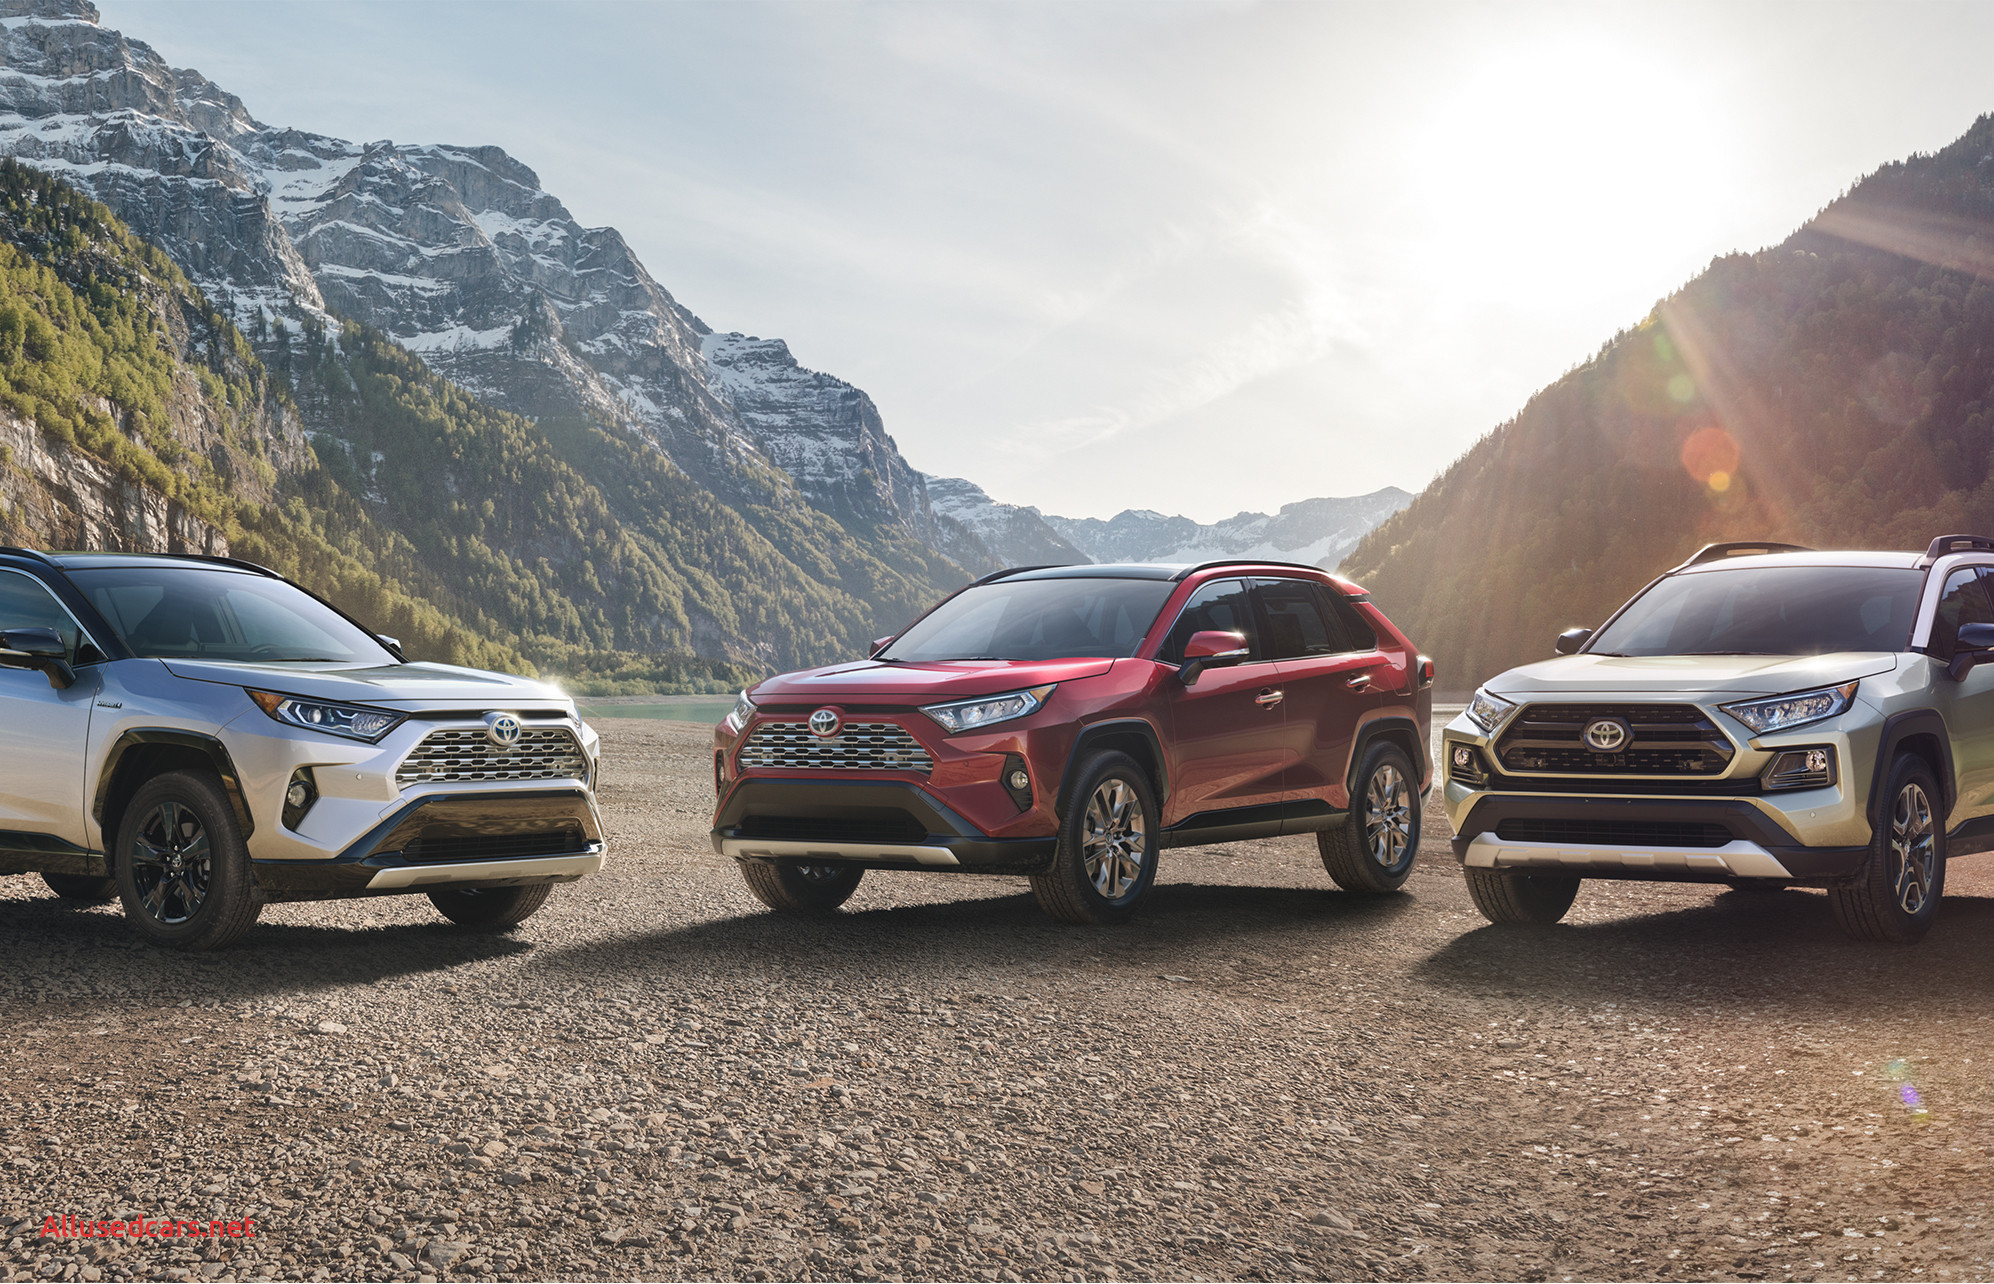 Best Affordable Suv Fresh the Best 2019 Suvs top Vehicles From 2019 Nyias